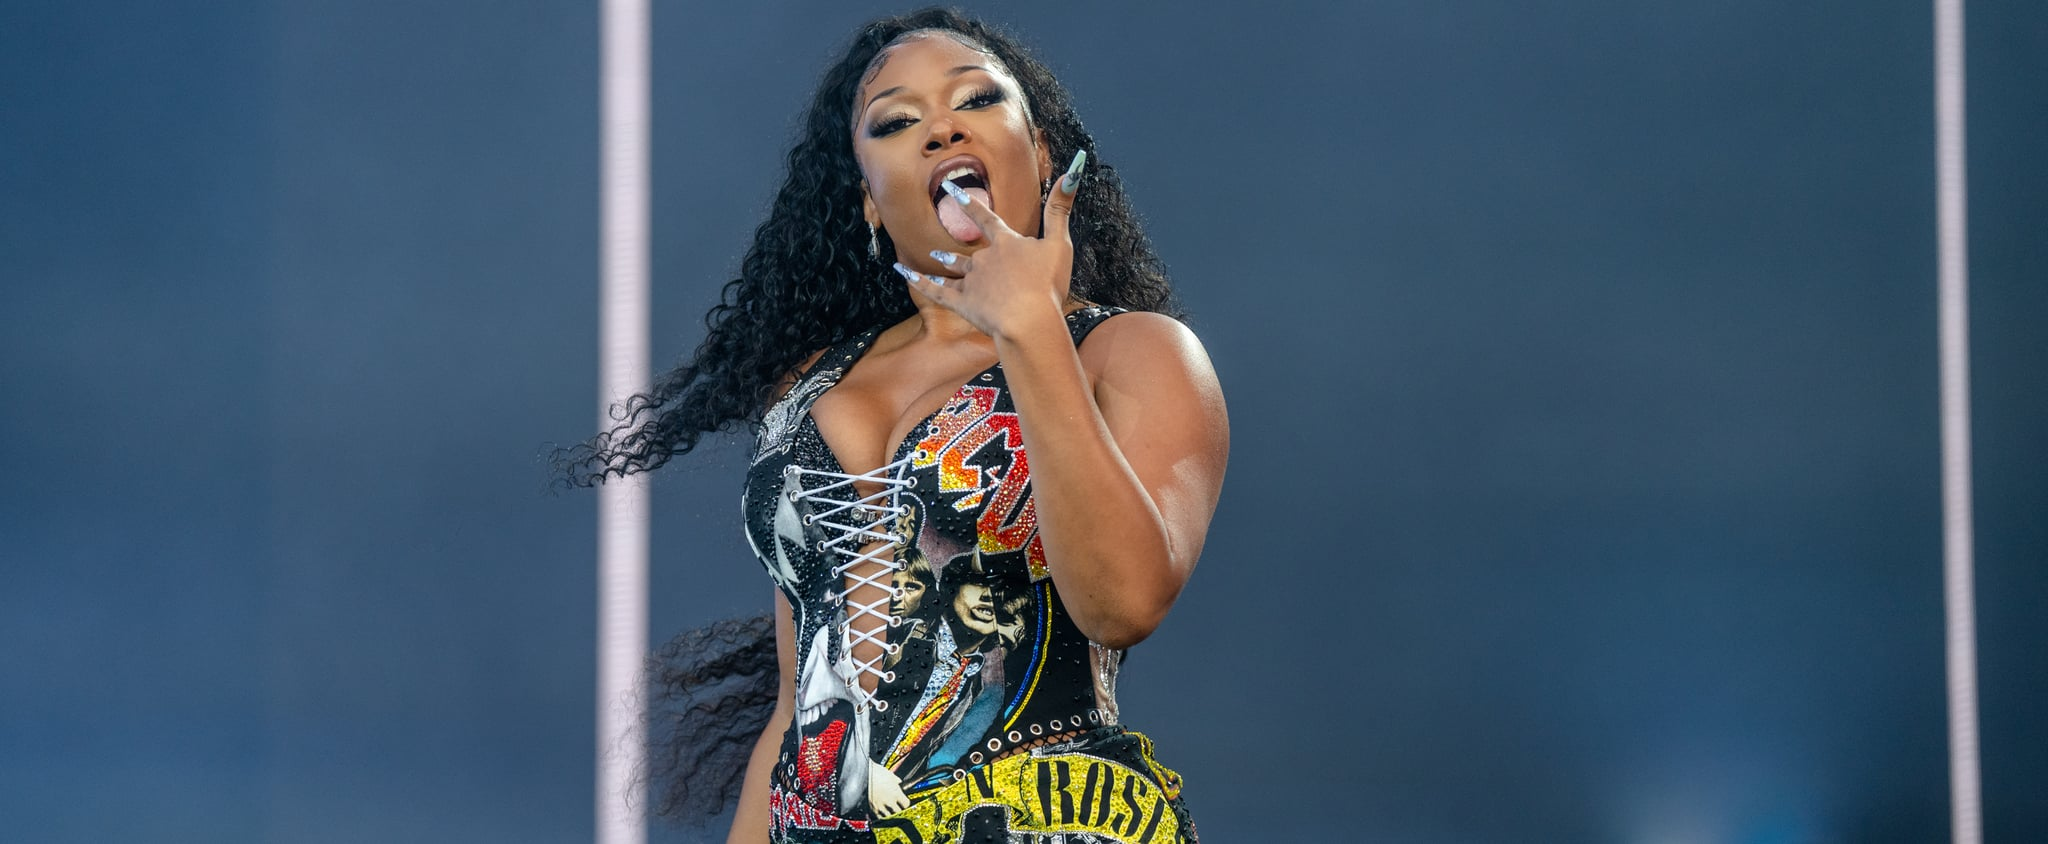 See Photos From Megan Thee Stallion's Sexy Lollapalooza Set